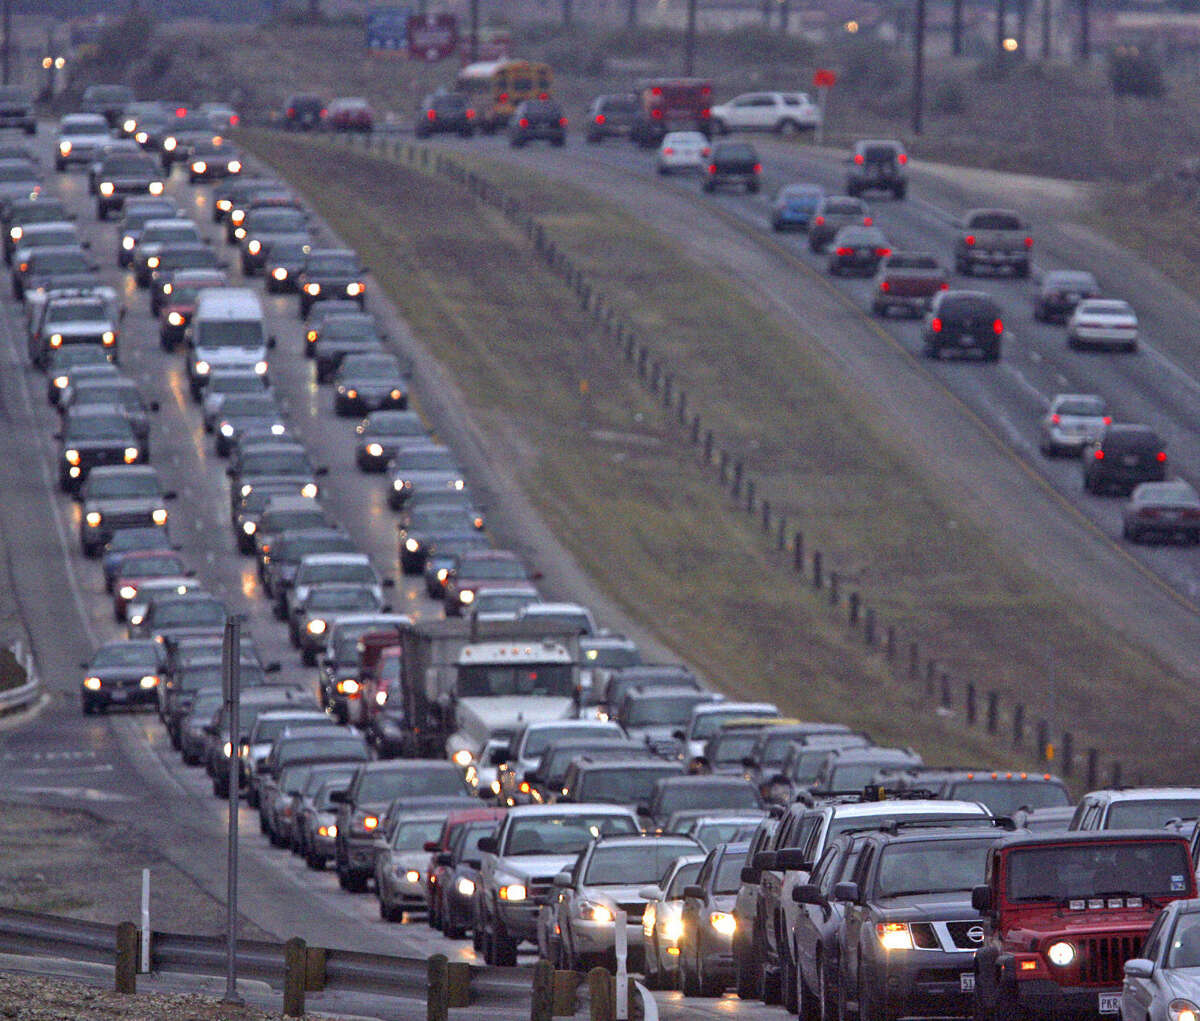 Without more transportation options, more than half of local roads will earn the worst rating for traffic congestion.